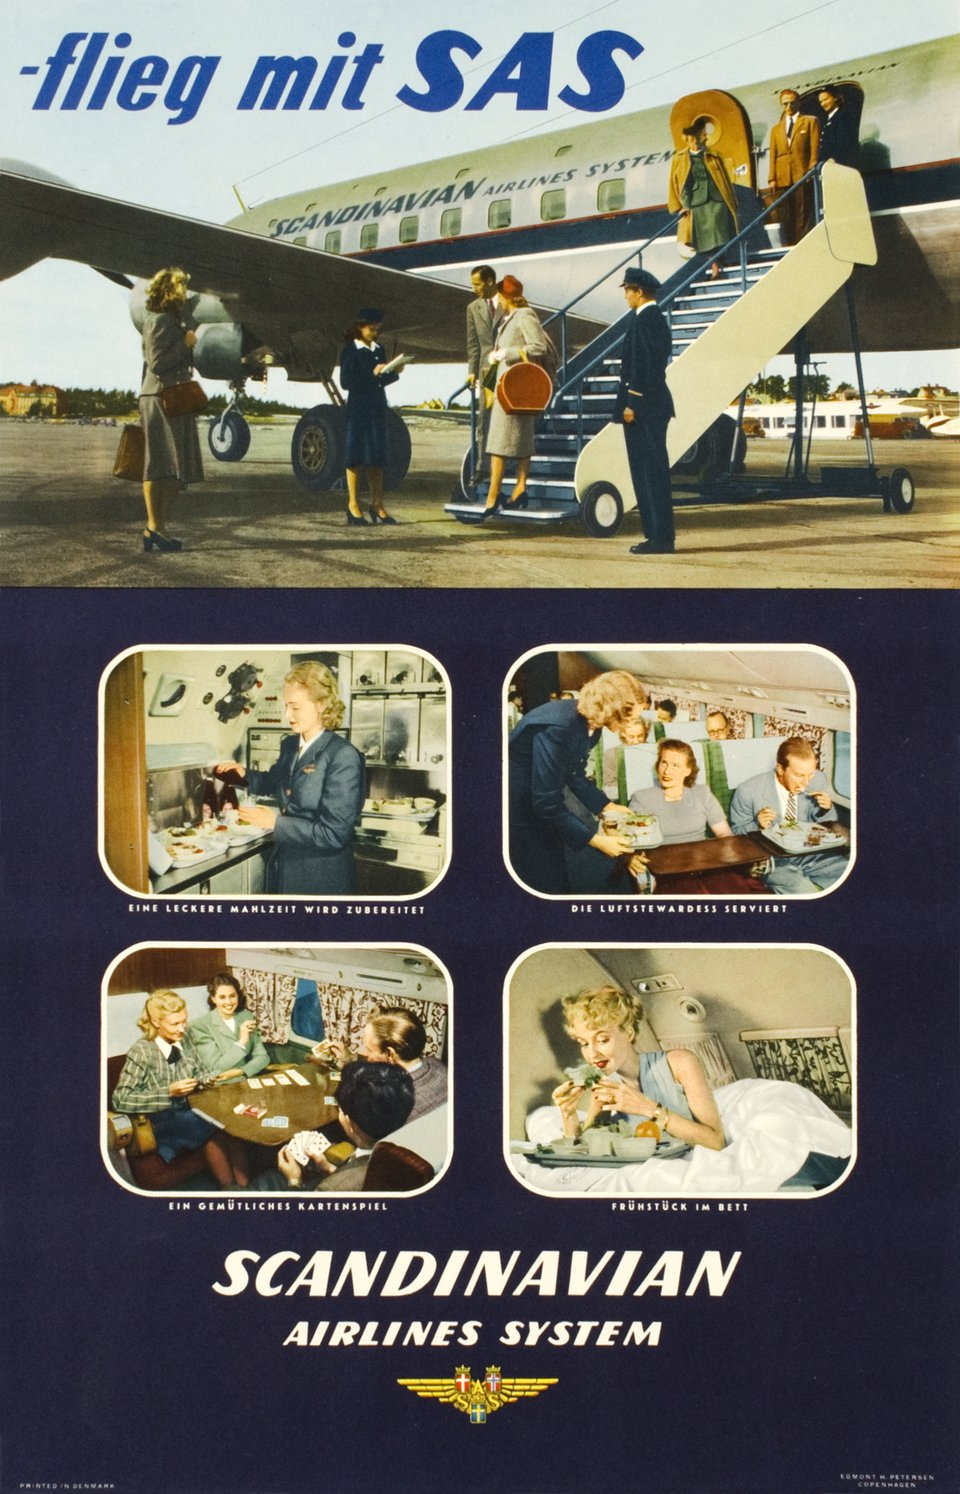 SAS - Flieg mit SAS, Scandinavian Airlines System – Vintage poster –  ANONYME – 1950